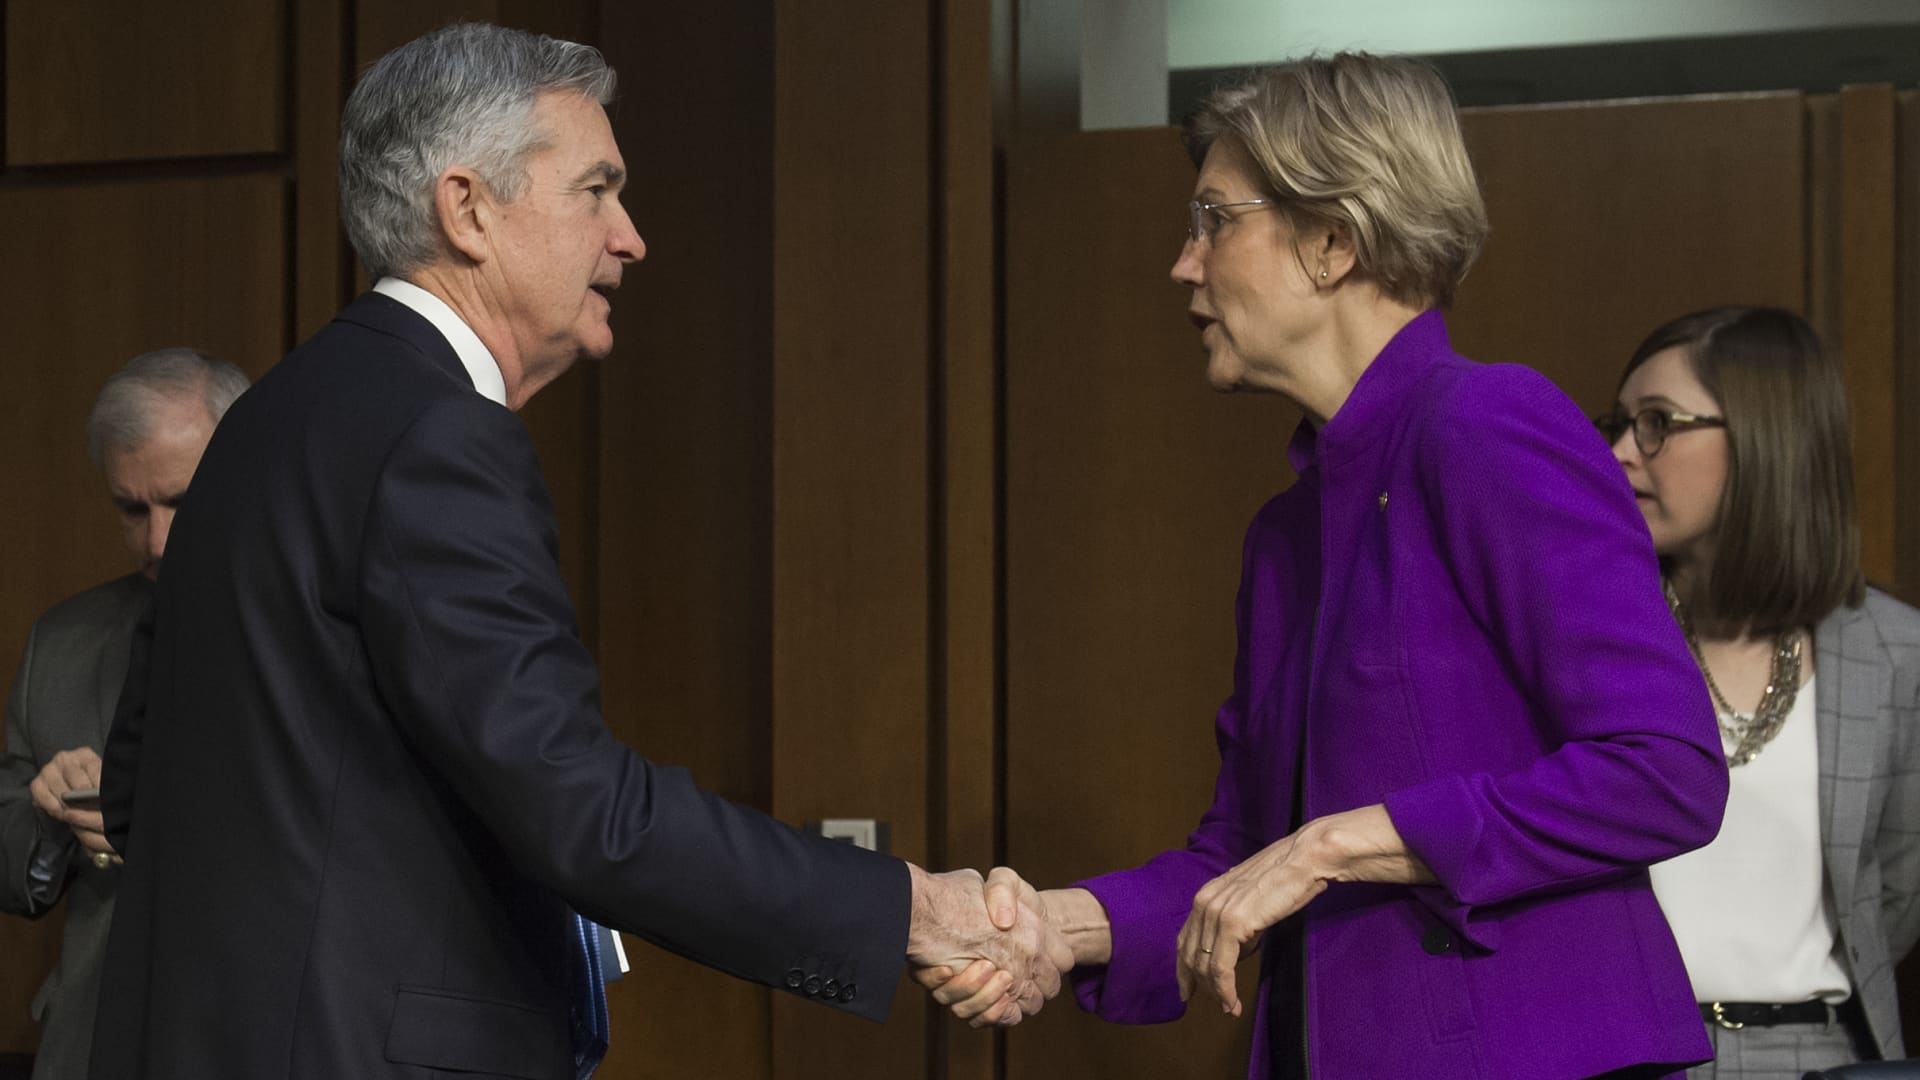 Jerome Powell, nominee to be chairman of the Federal Reserve Board of Governors, shakes hands with US Senator Elizabeth Warren (R), Democrat of Massachusetts, prior to testifying during his confirmation hearing before the Senate Banking, Housing and Urban Affairs Committee on Capitol Hill in Washington, DC.